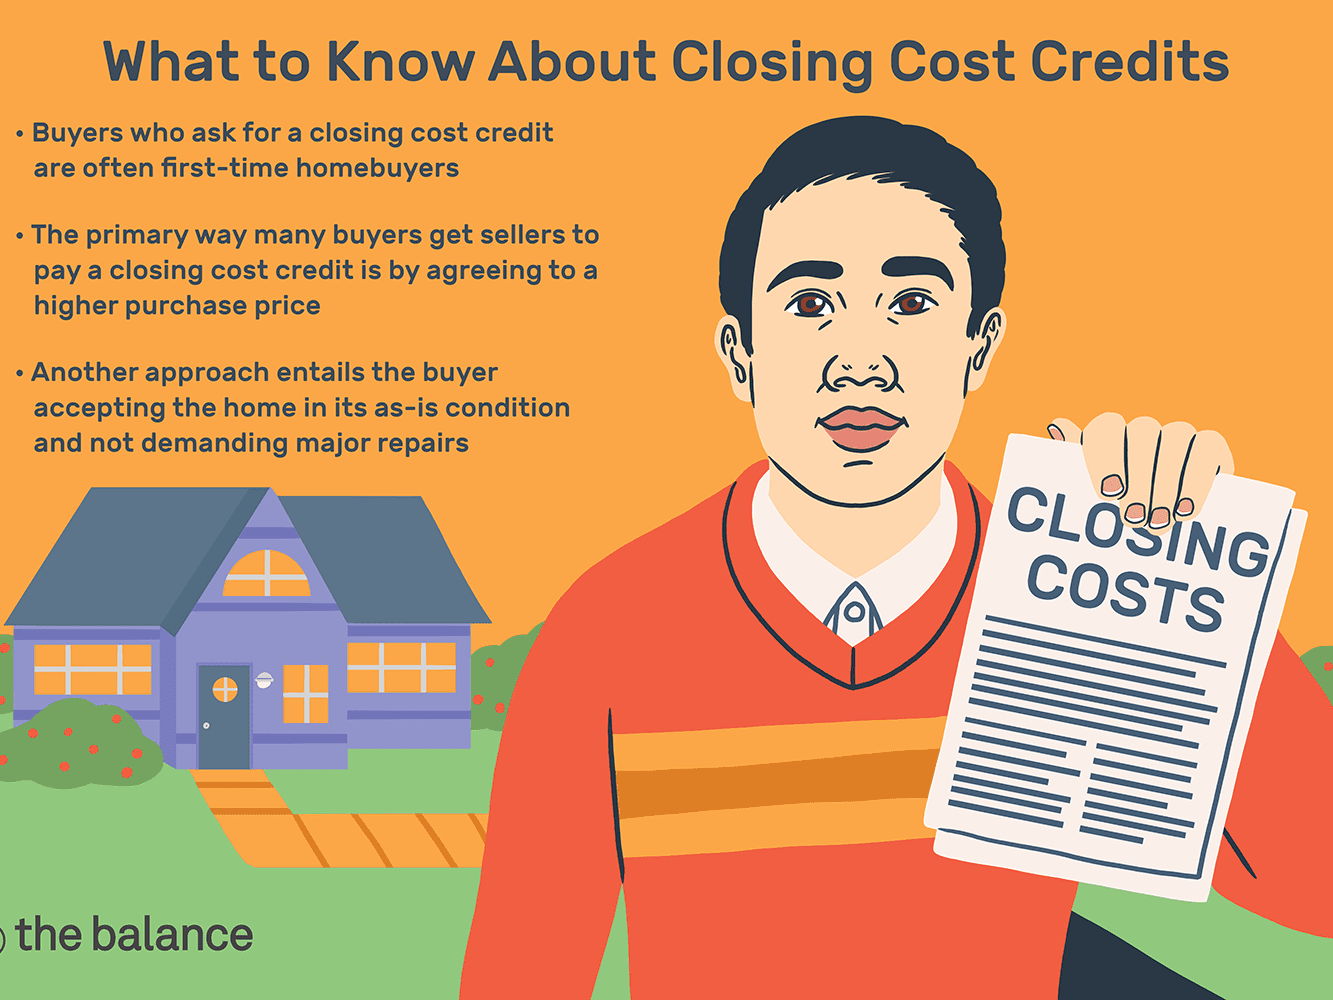 How To Ask A Home Seller To Pay A Closing Cost Credit